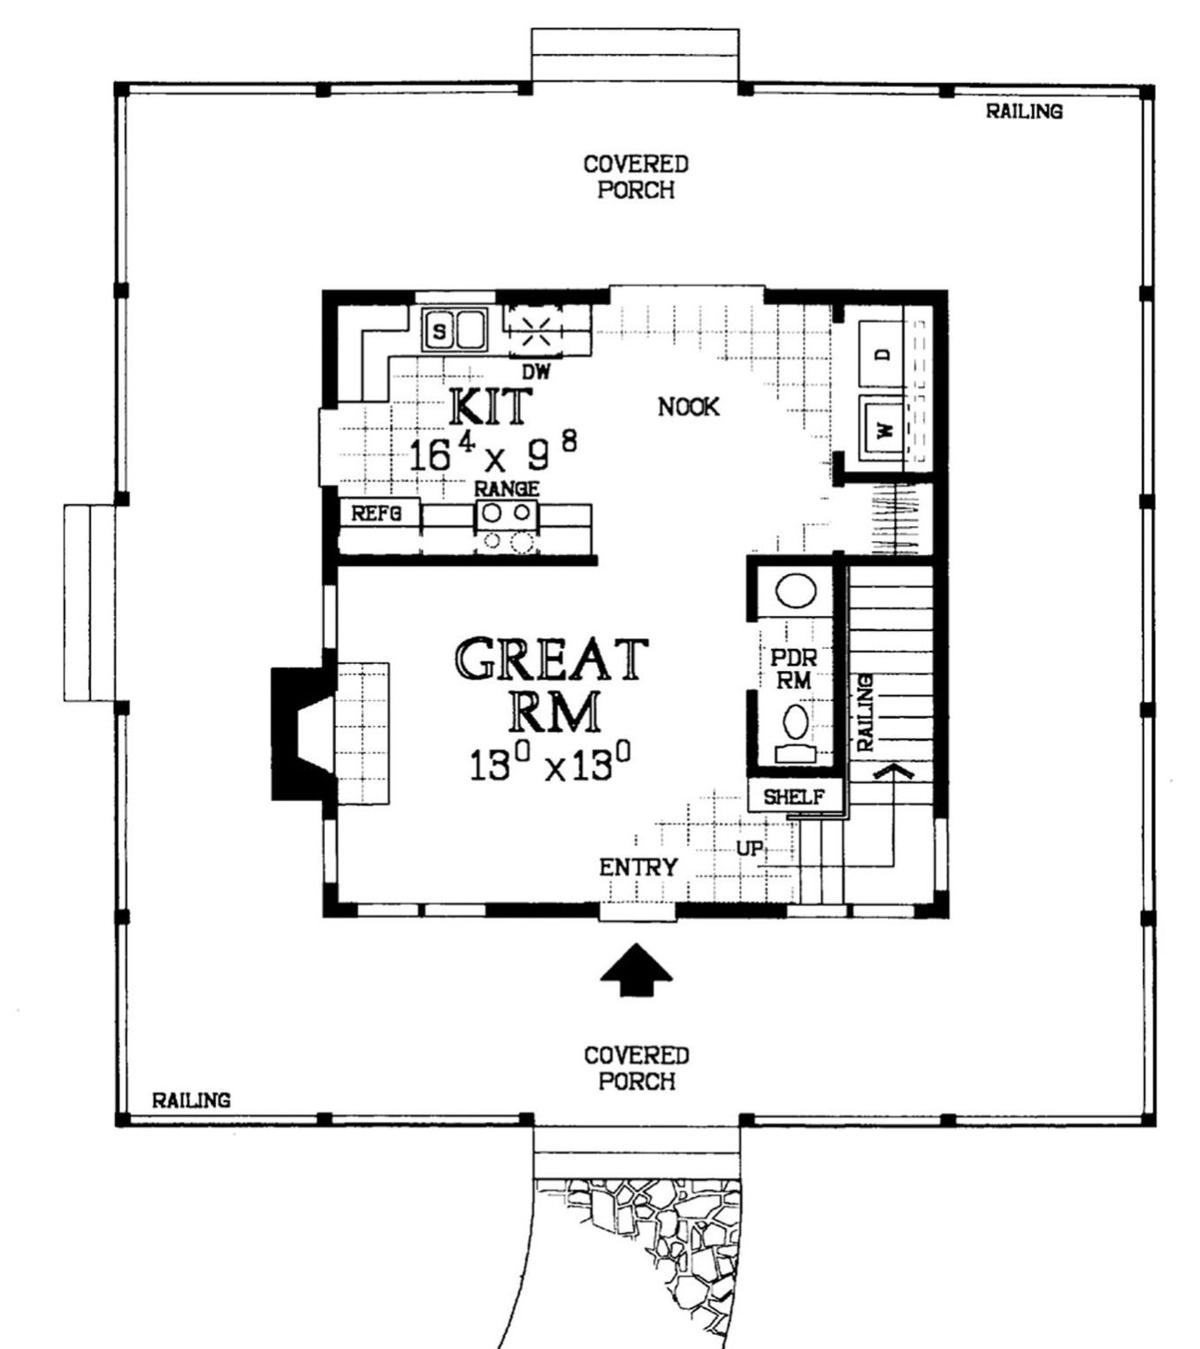 This week's house plan